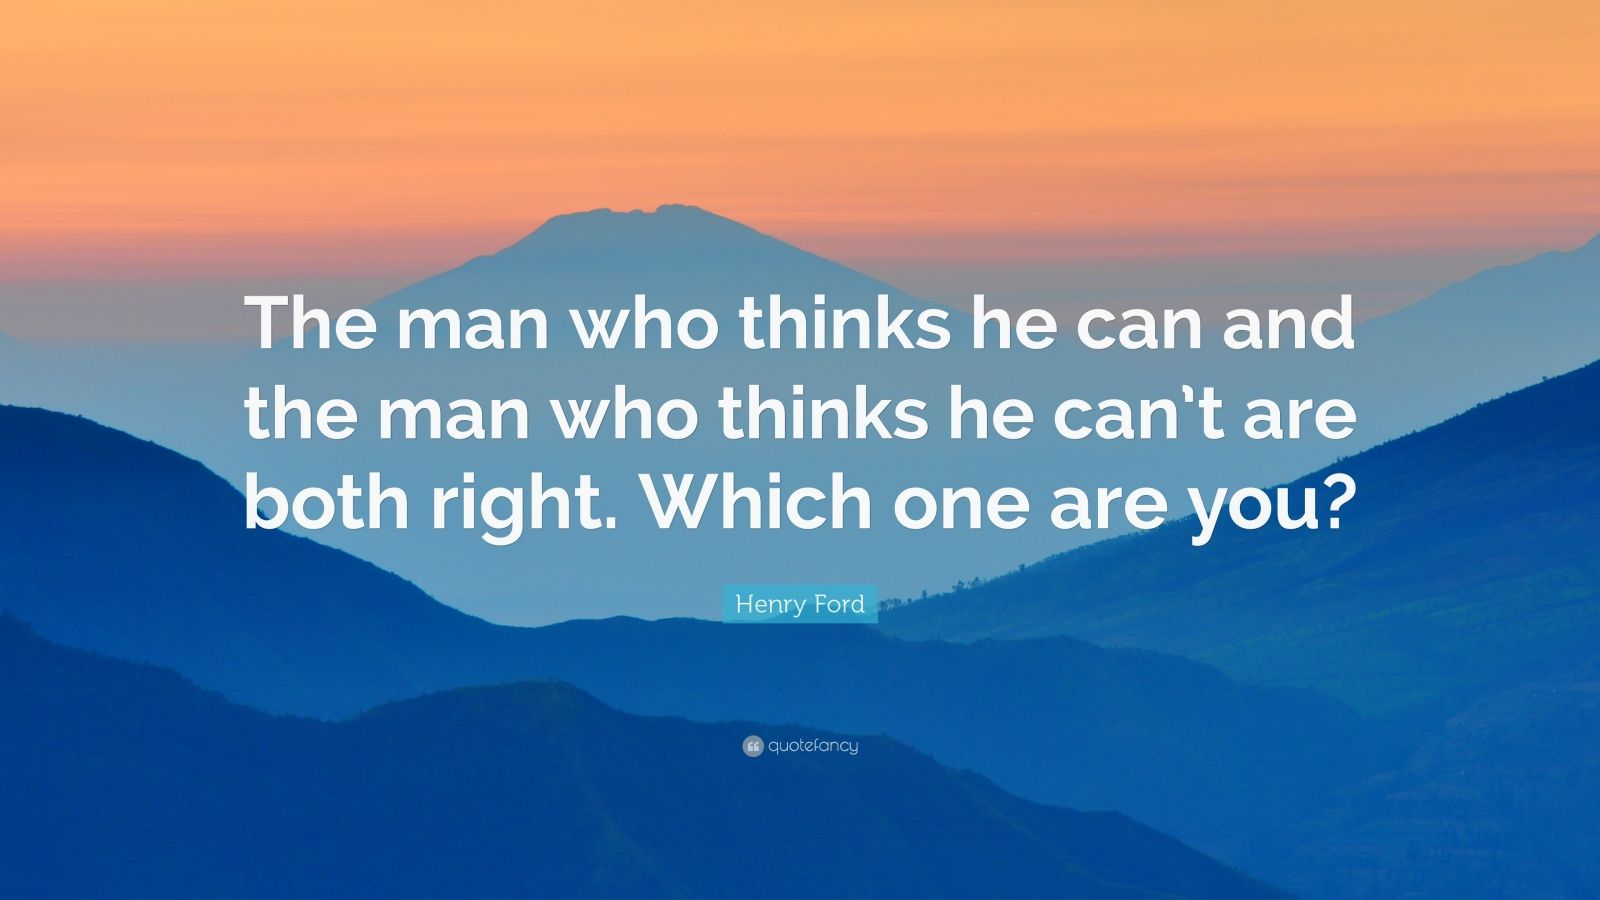 Inspirational Quotes About Life Wallpaper Henry Ford Quote The Man Who Thinks He Can And The Man